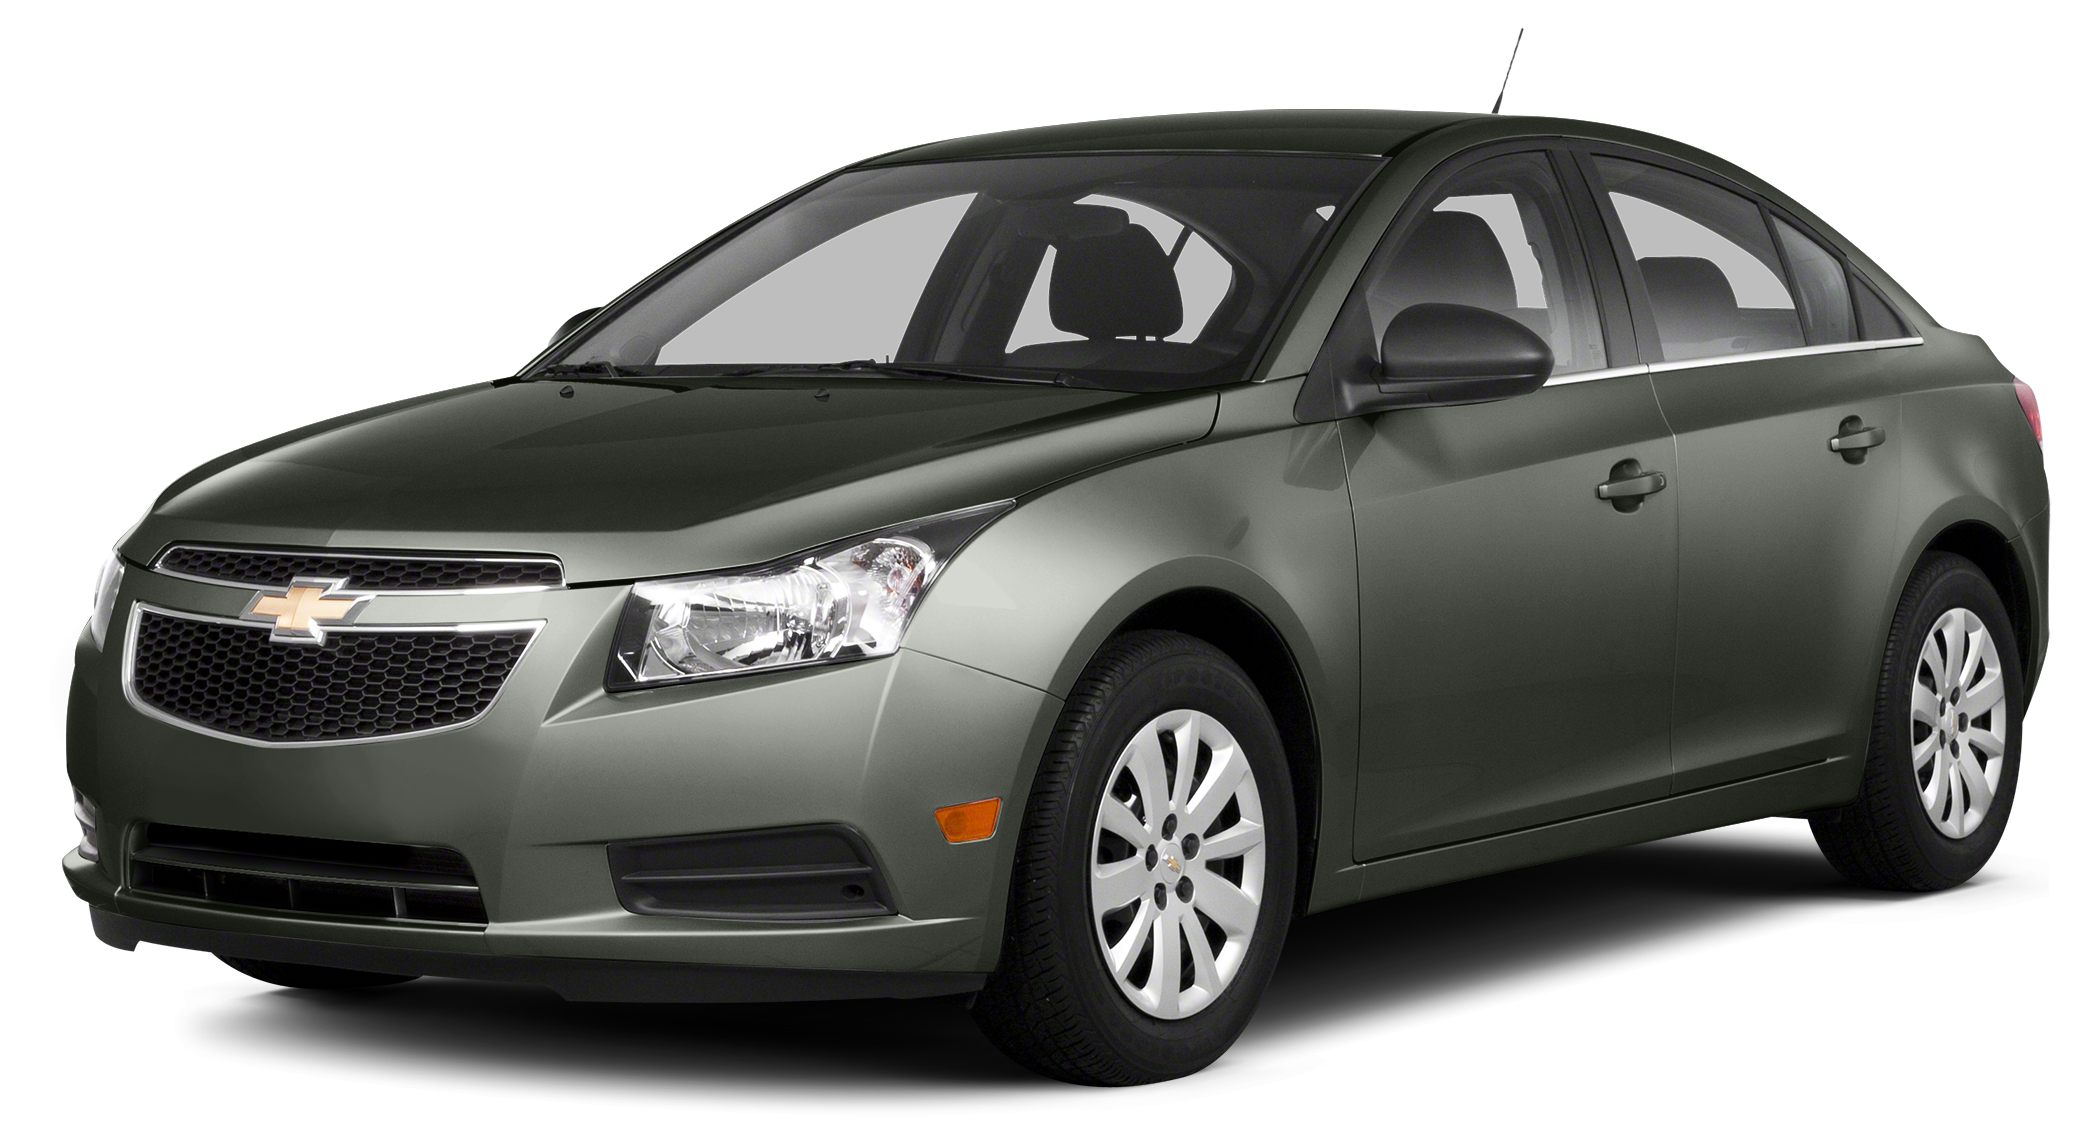 2013 Chevrolet Cruze LS LS trim CARFAX 1-Owner ONLY 28408 Miles EPA 35 MPG Hwy22 MPG City Sa